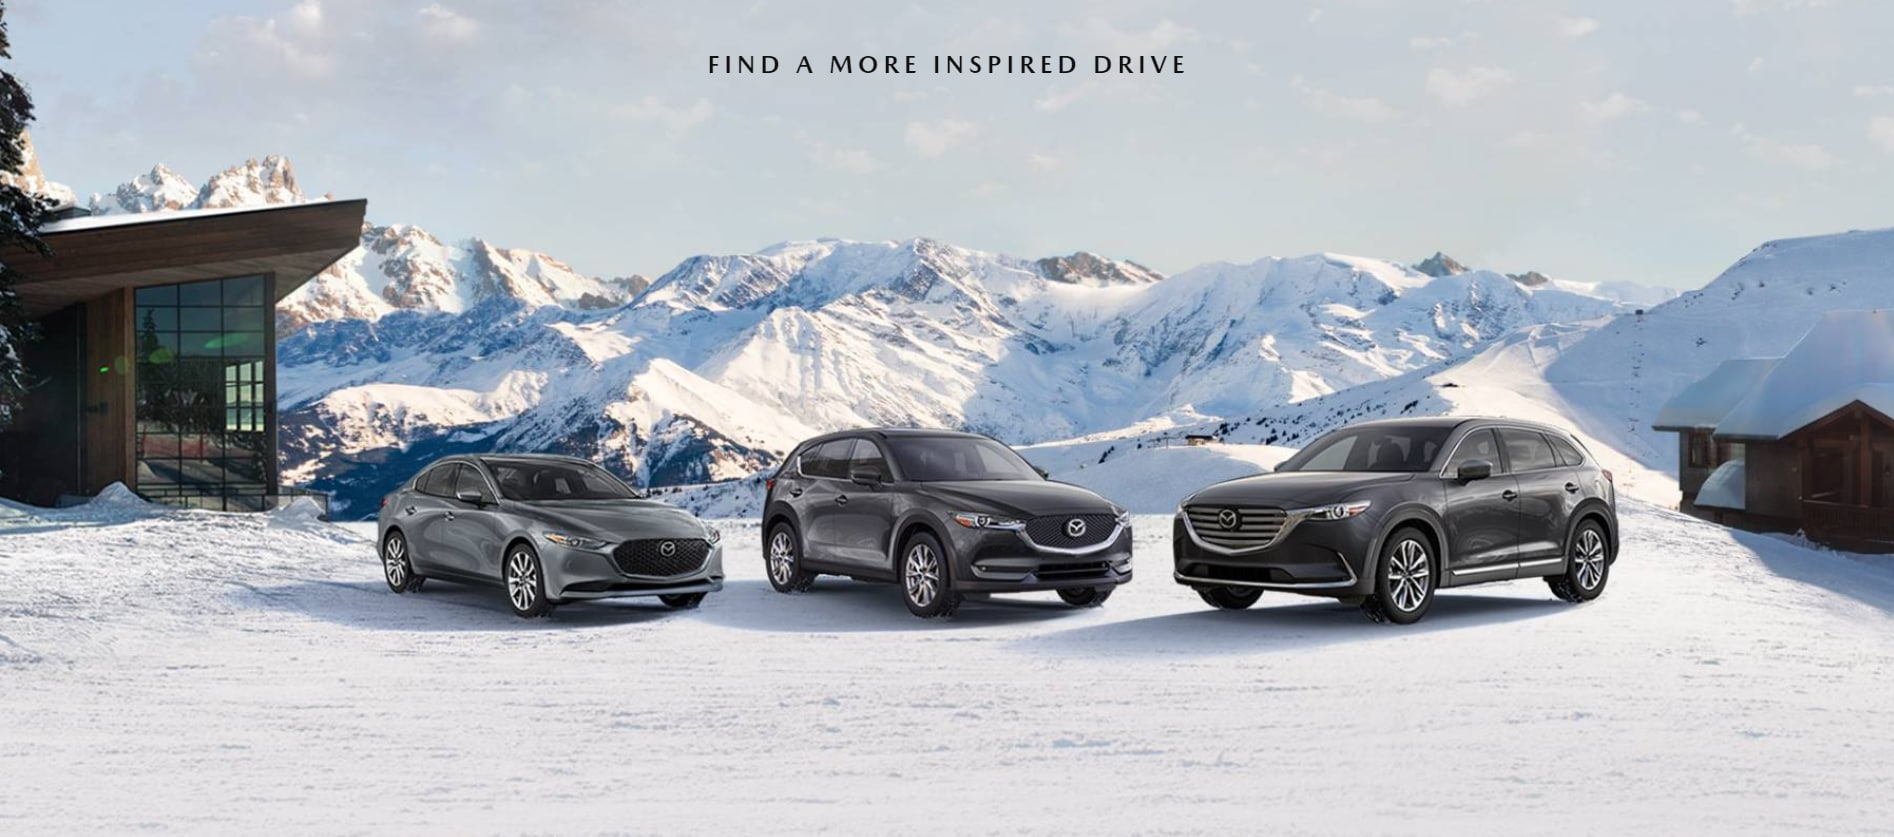 Mazda Lease Specials at Wilkins Mazda in Elmhurst